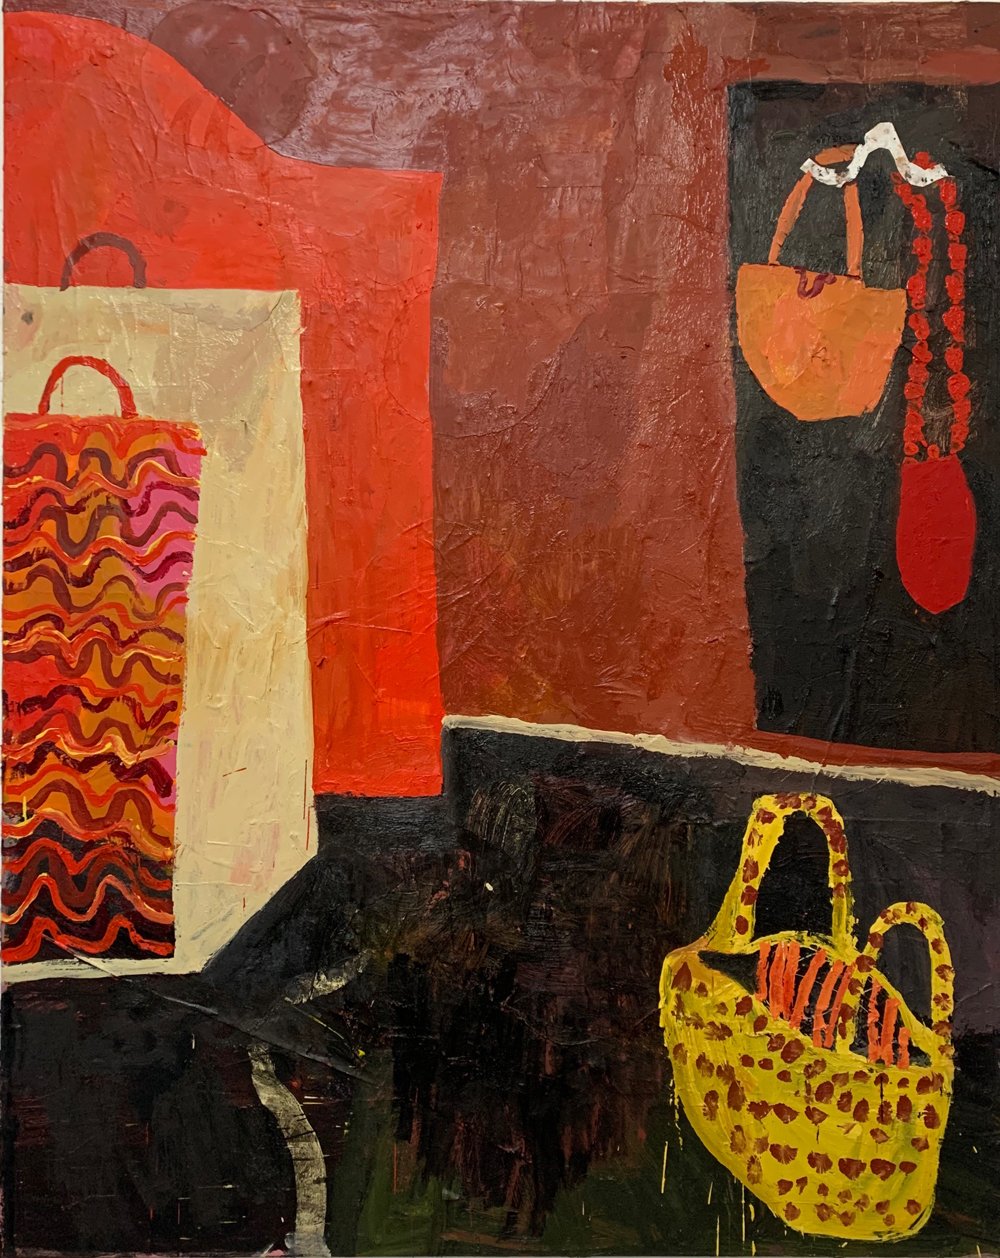 Florence-Hutchings.-The-Laundry-Basket,-2020.-Oil-paint-and-collage-on-canvas.-175x140cm